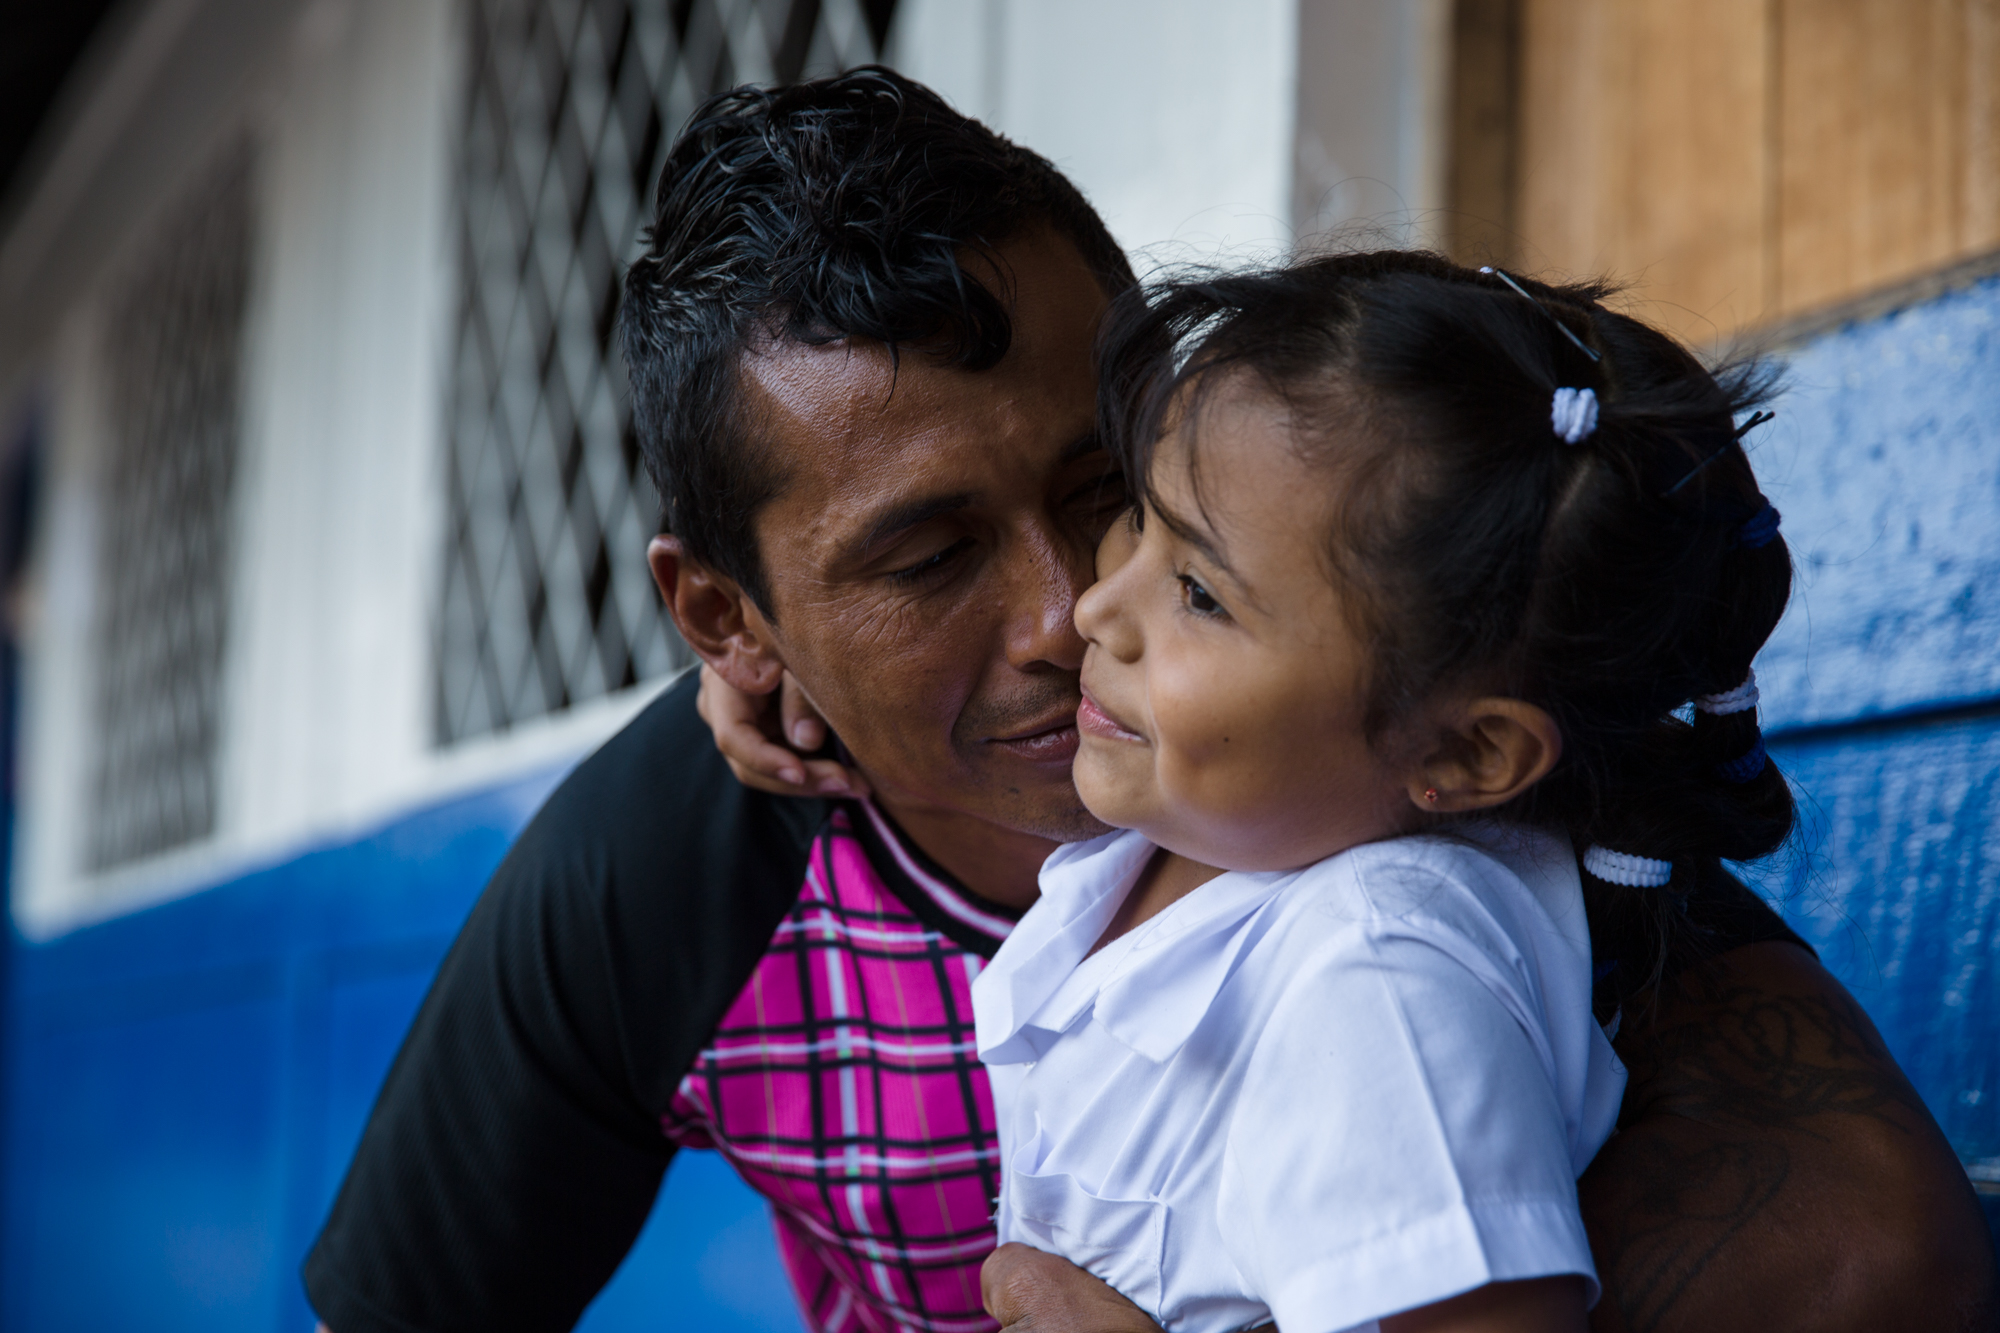 Jairo Blanchard greets his daughter at the end of the school day in Matagalpa, Nicaragua. His family is incredibly important to him and has helped him refocus his priorities and change his life.